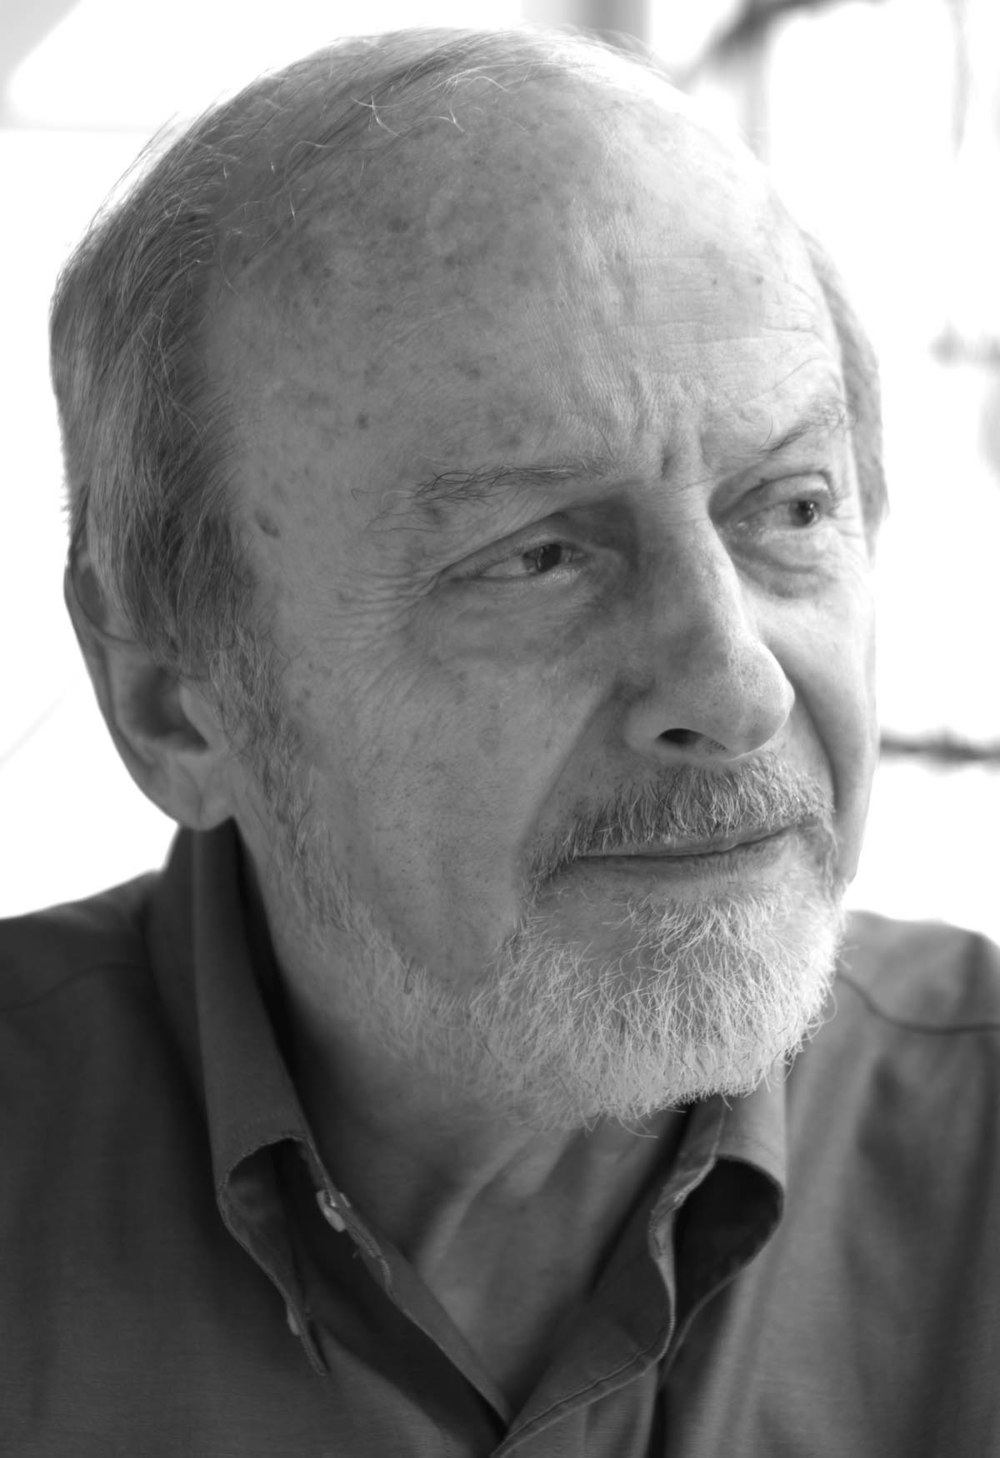 American Jewish author E.L. Doctorow. Credit: Wikimedia Commons.